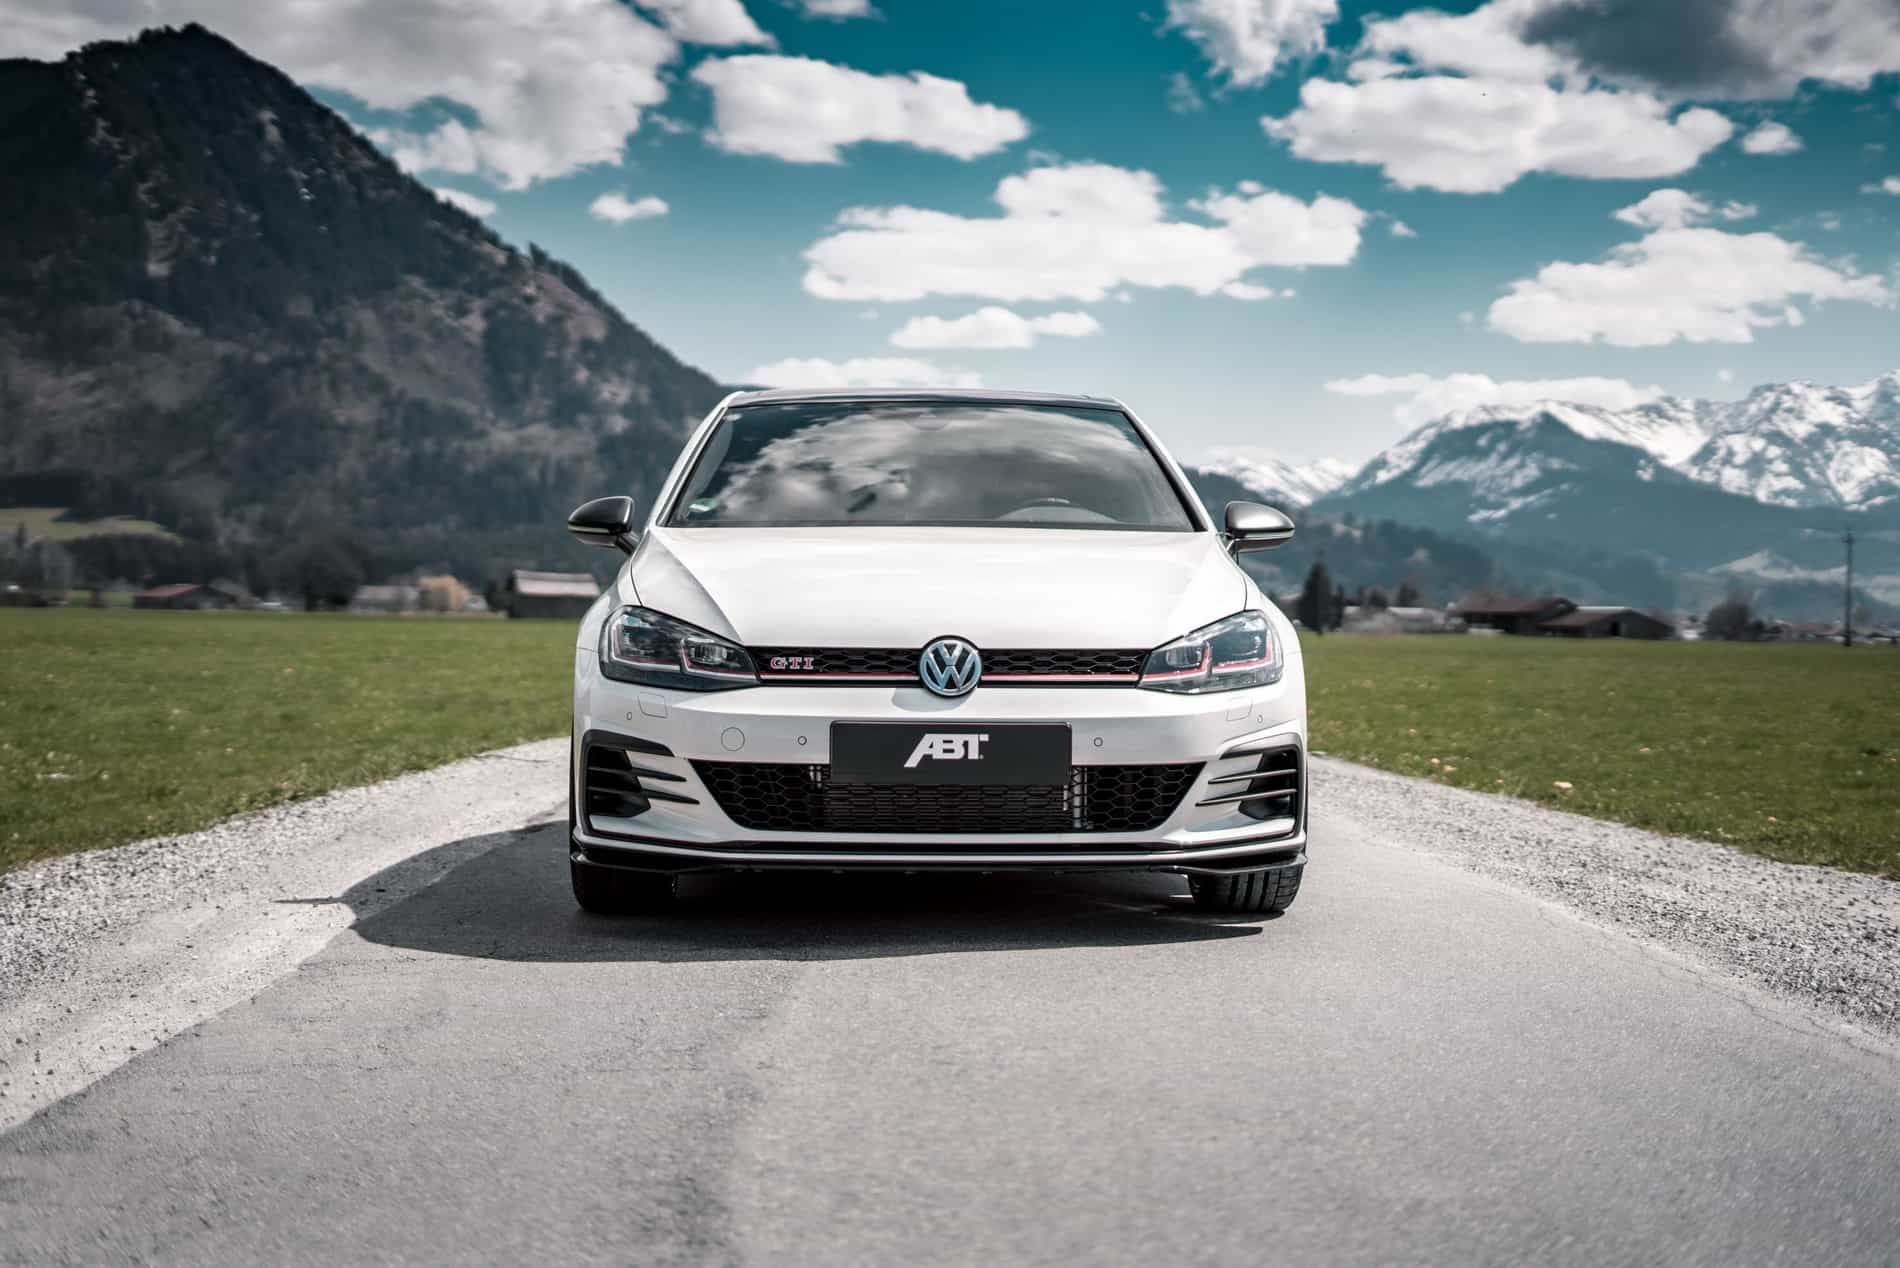 csm_ABT_GTI_TCR_GR20_front_3_8756aaac81